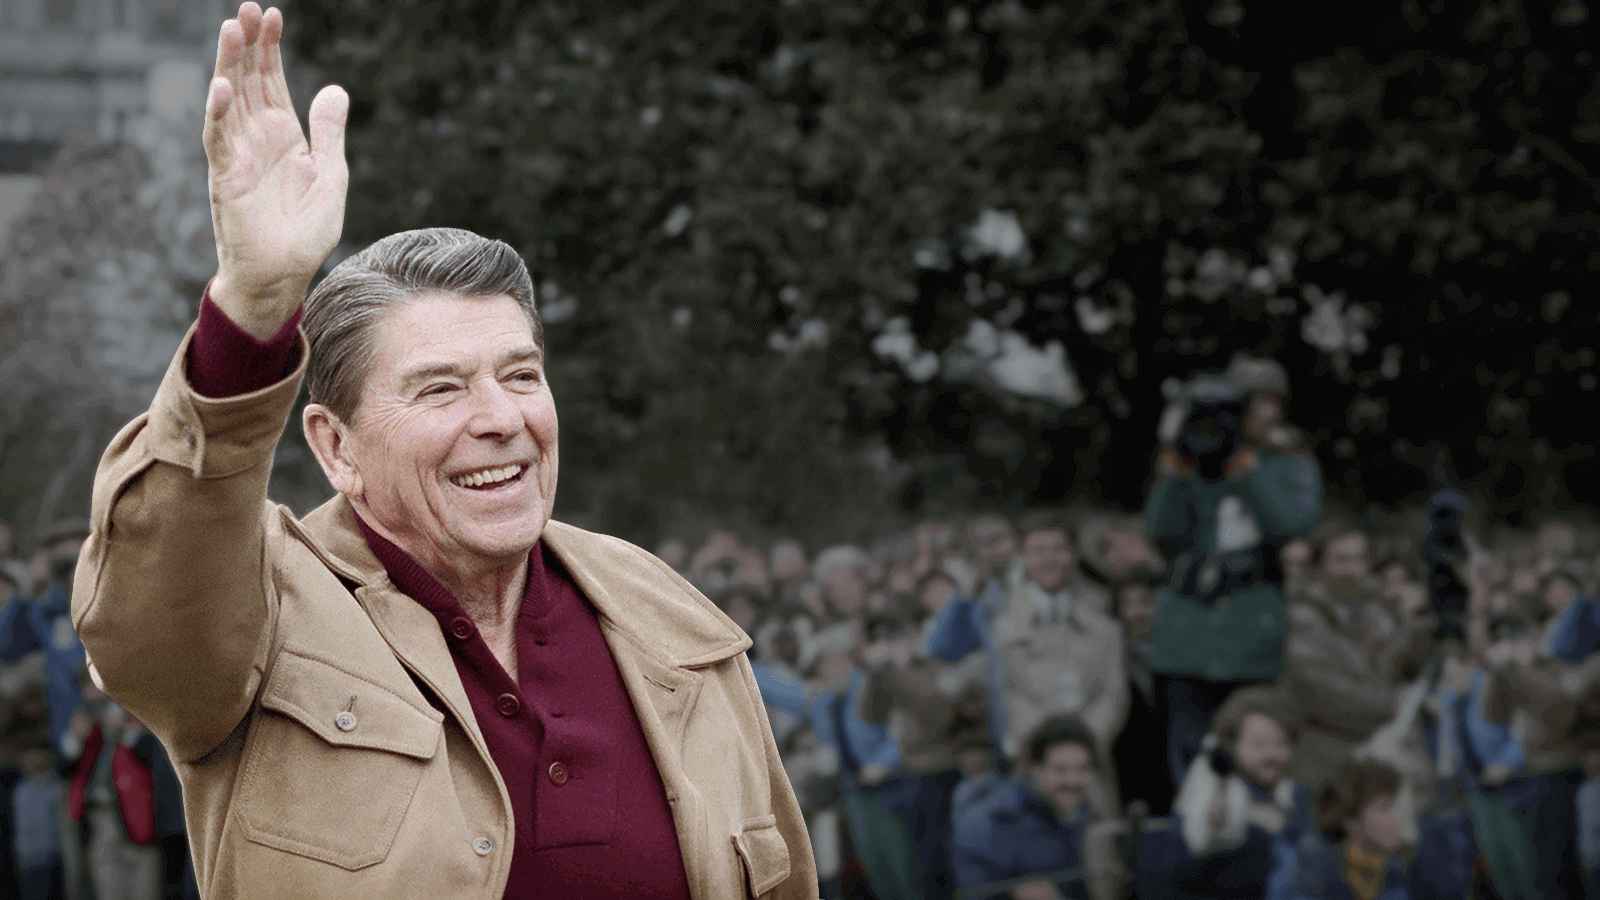 Ronald Reagan waving at crowd